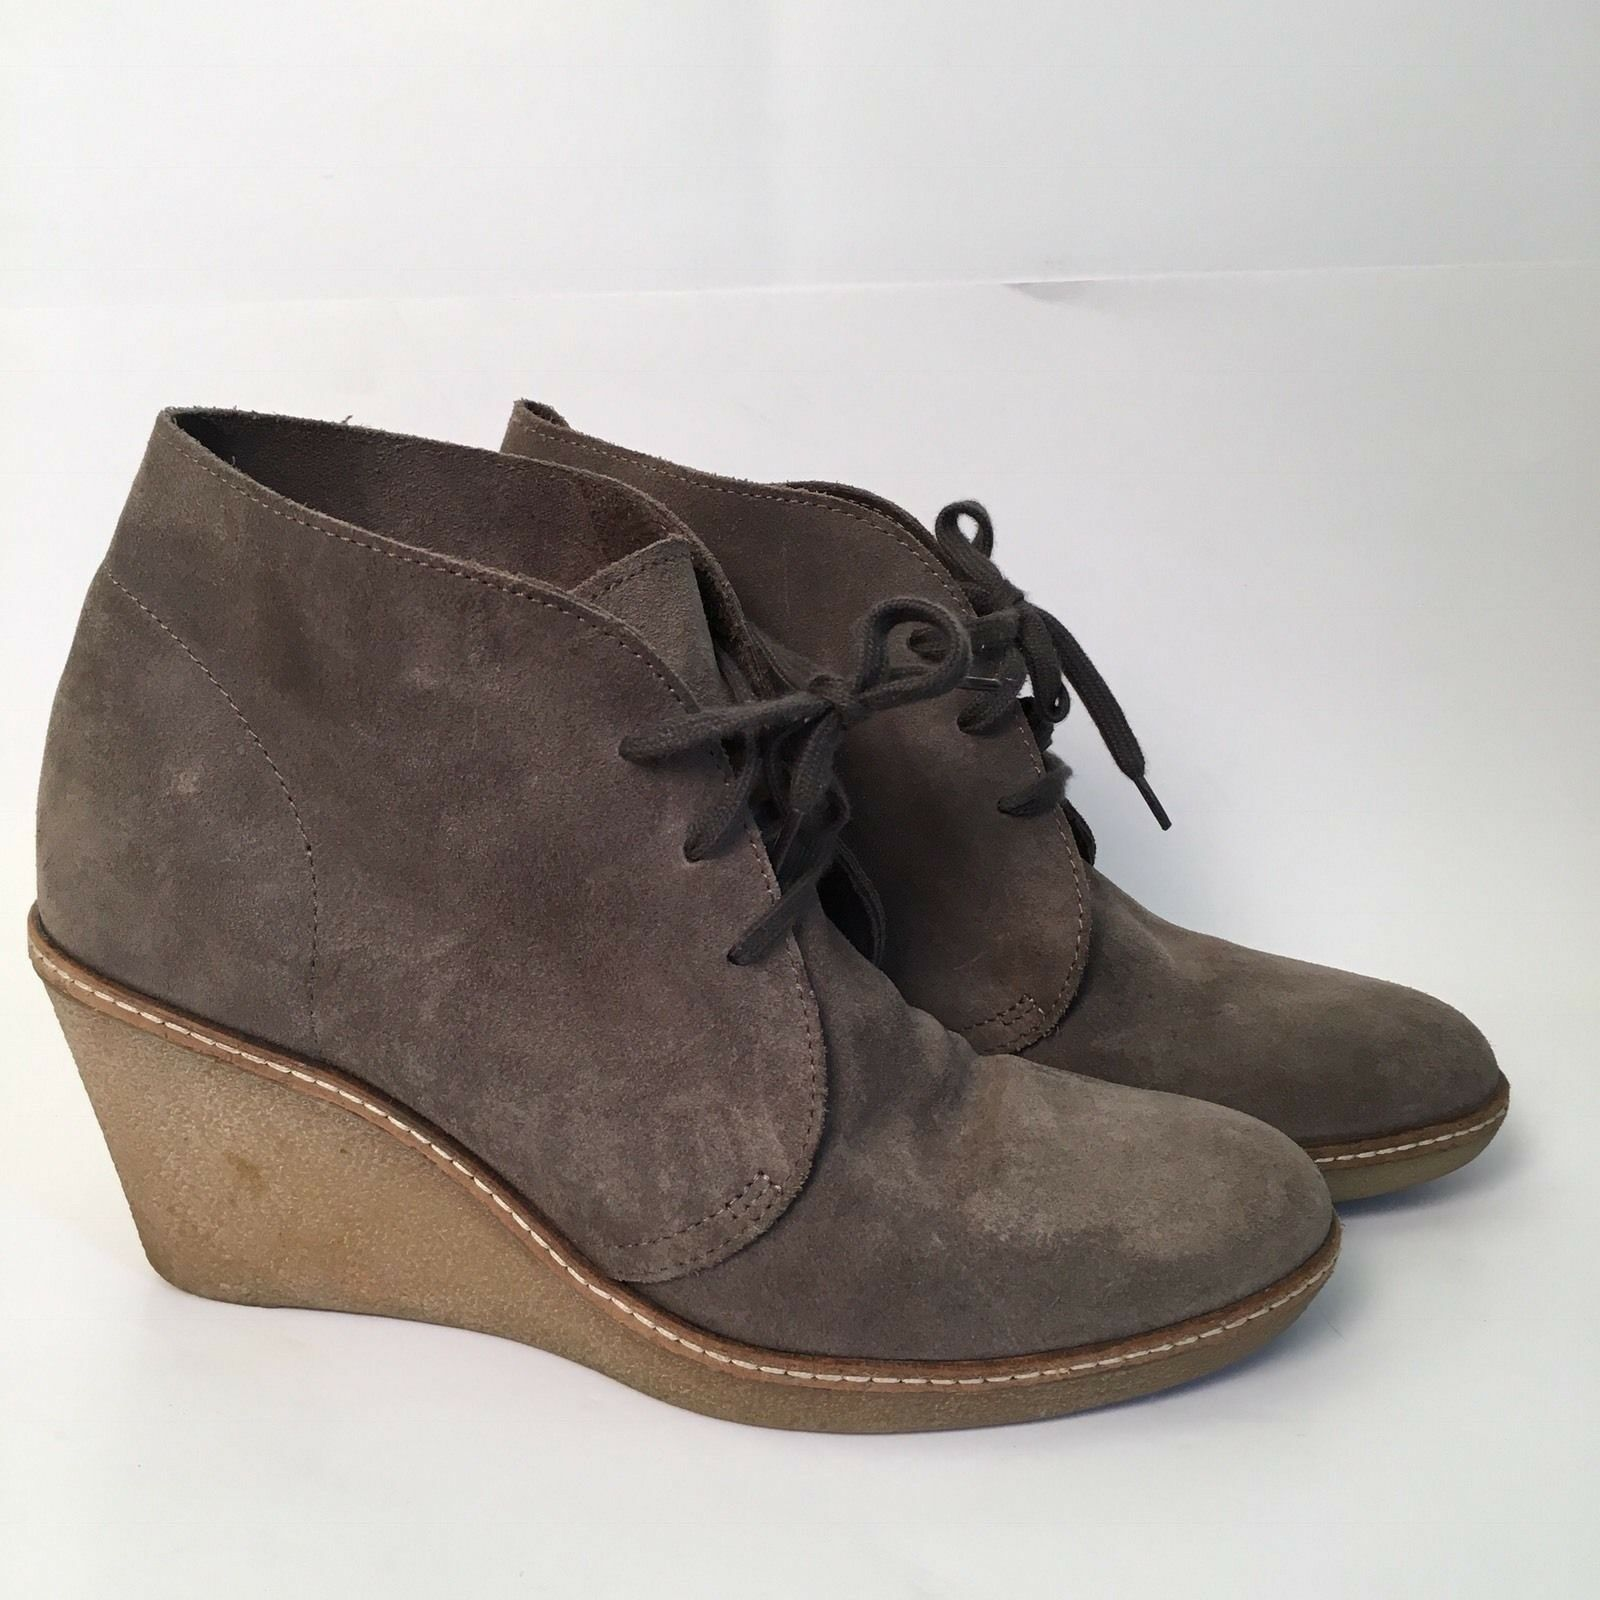 J Crew Olive Size Green Suede Macalister Wedge Bootie Size Olive 8 Gum Sole GREAT used Cond f4ba87